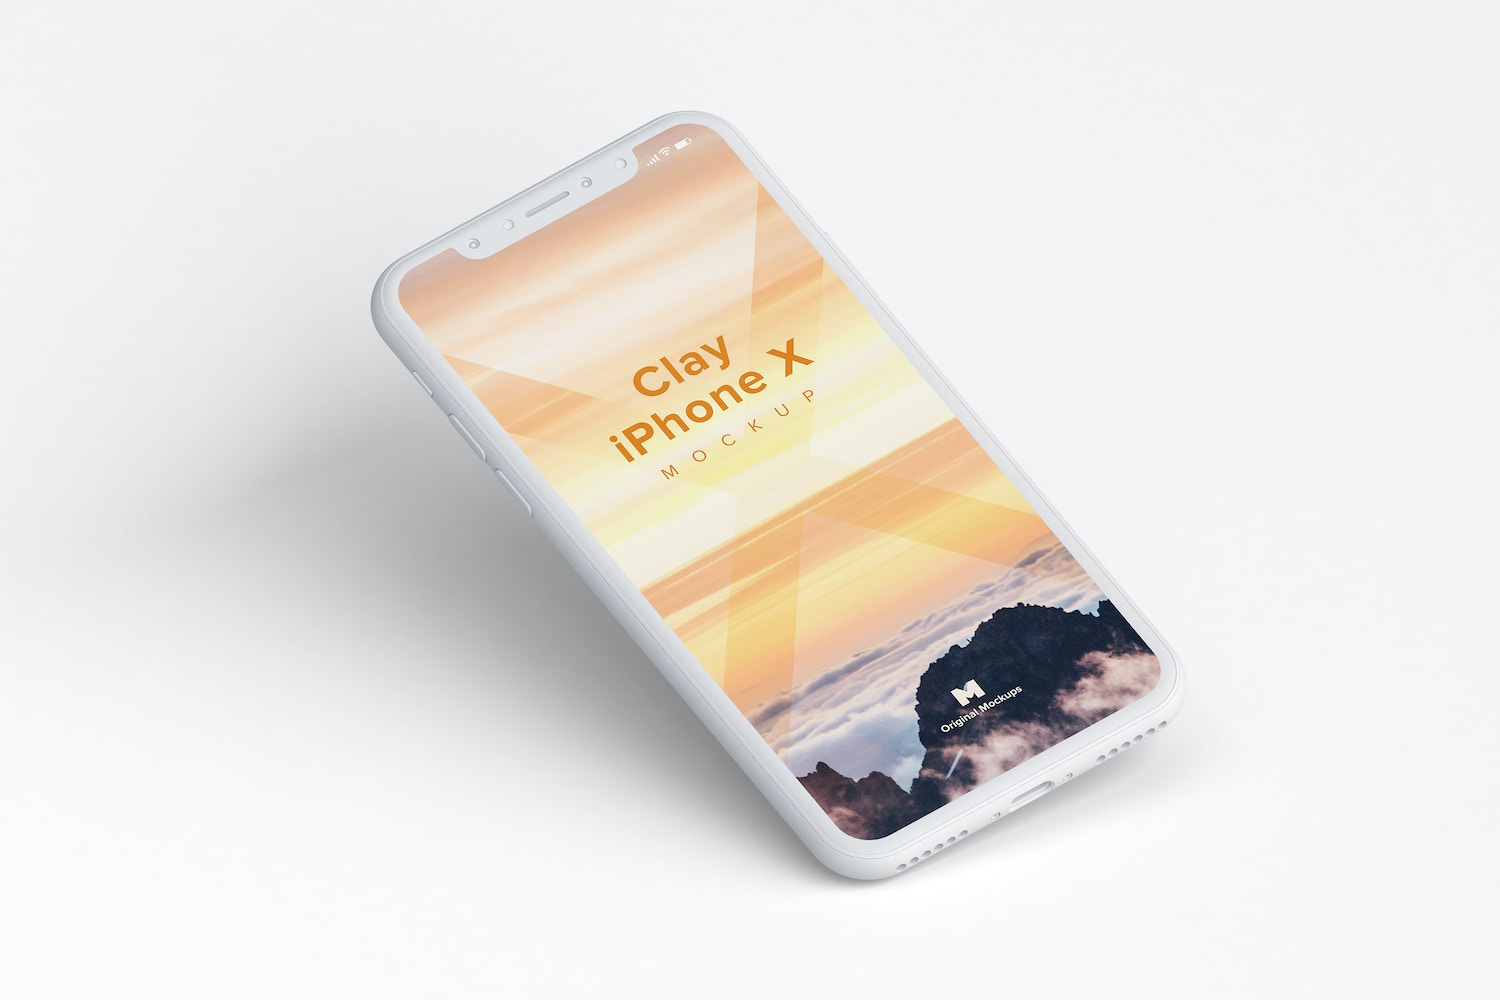 Clay iPhone X Mockup 01 by Original Mockups on Original Mockups